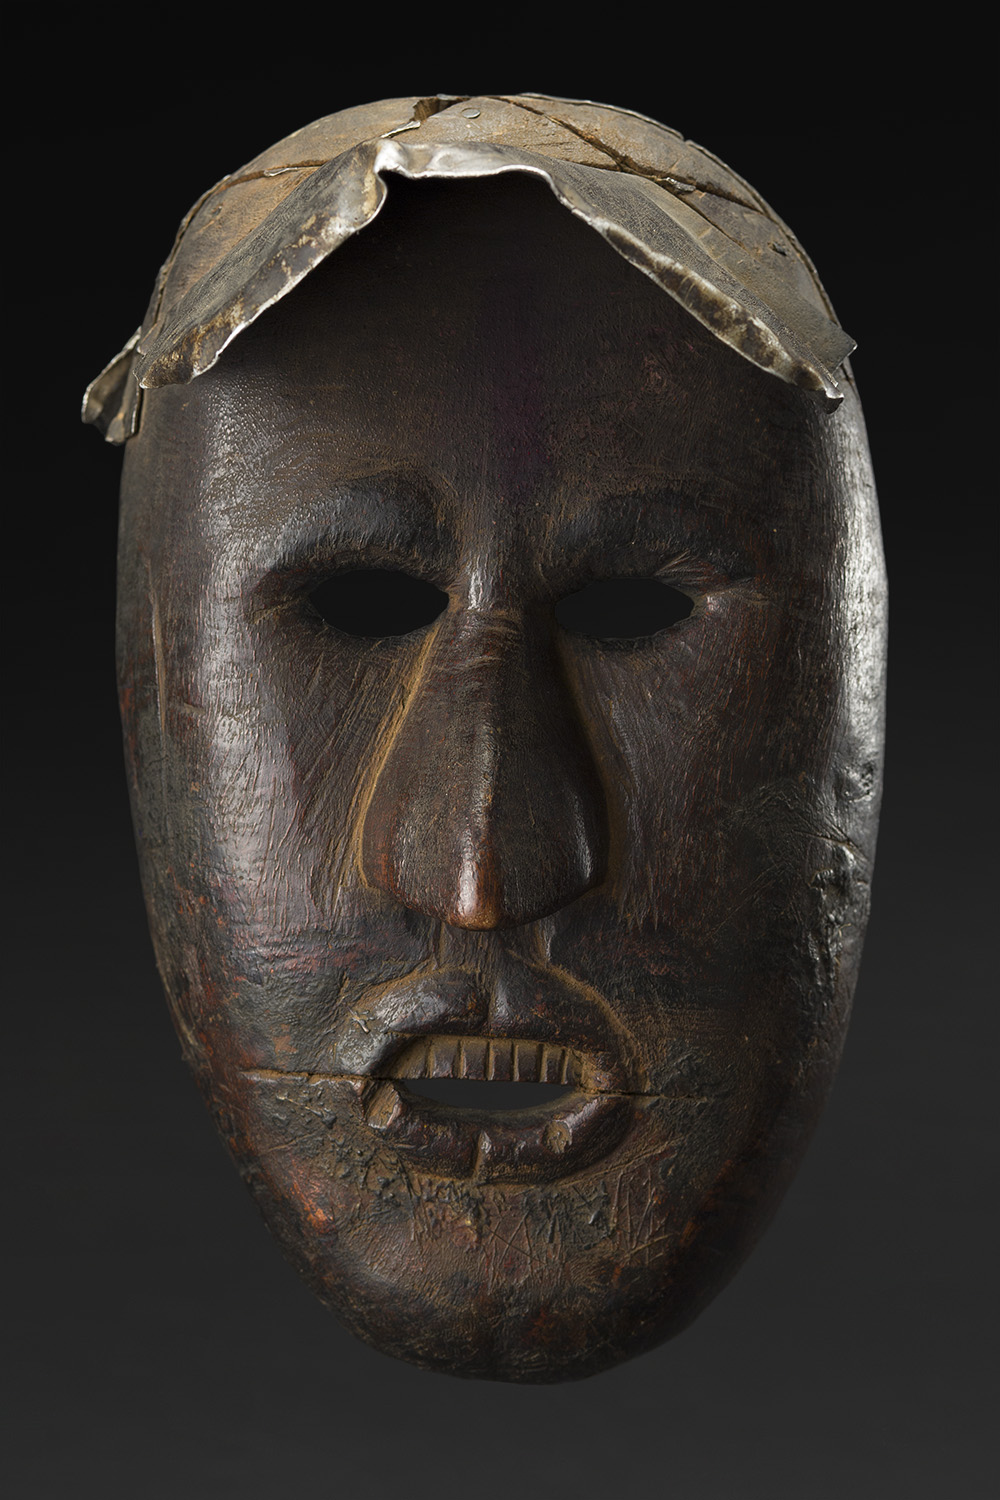 Masks    Nepal  , Early 20th C. Wood, metal 9 x 5.5 x 6.5 inches 22.9 x 14 x 16.5 cm M 223s